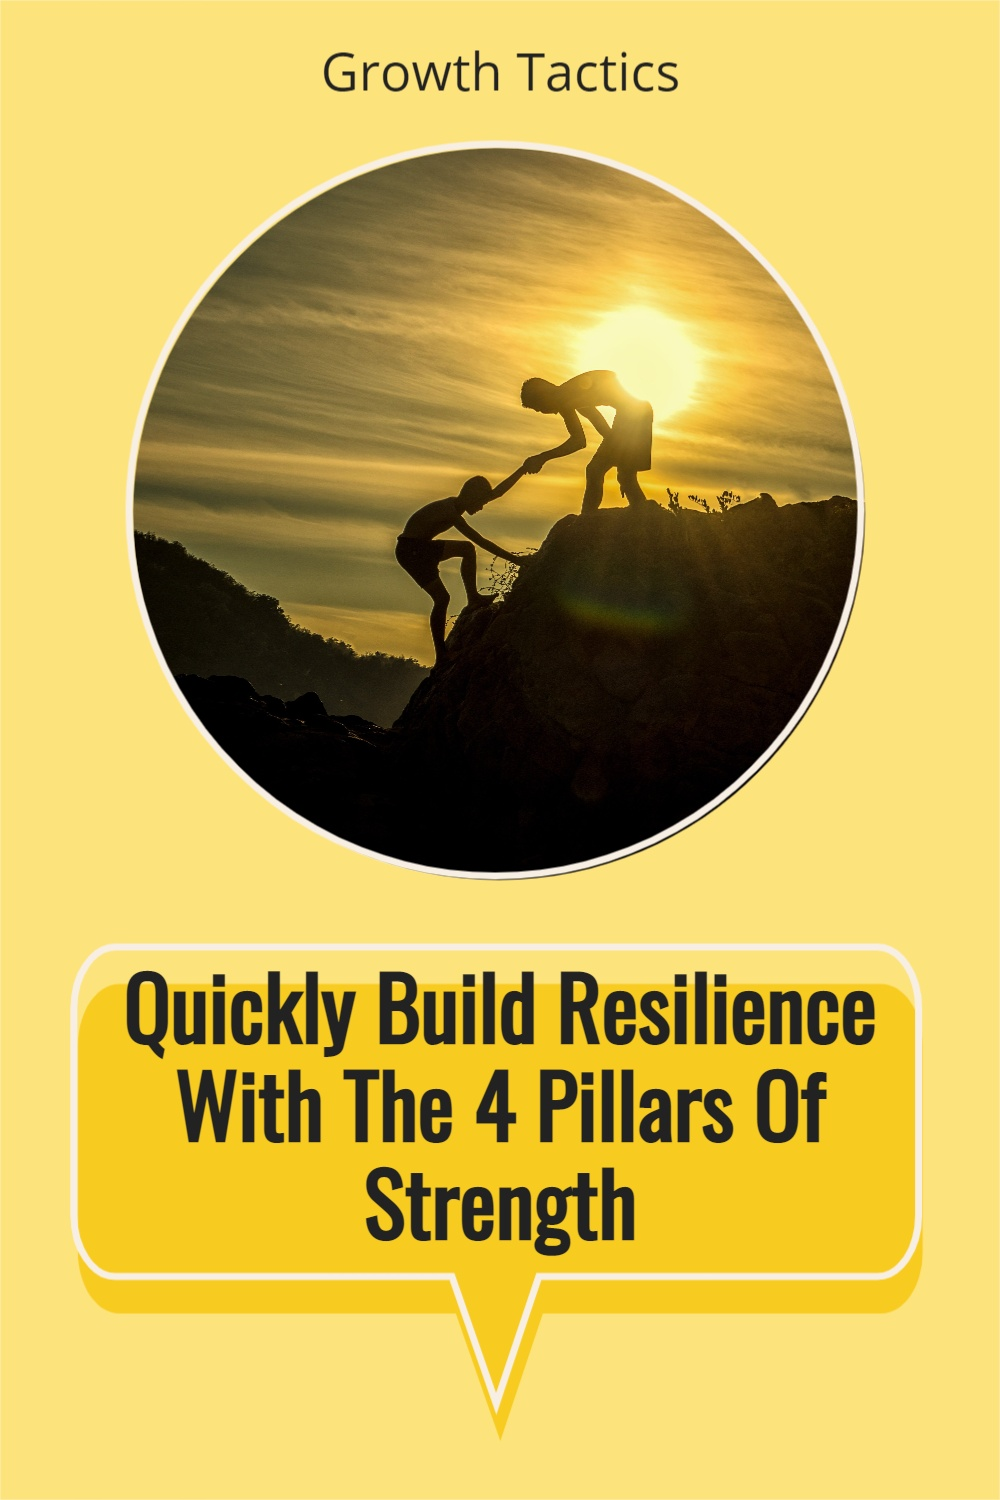 How the 4 Pillars of Resilience Will Make You a Stronger You